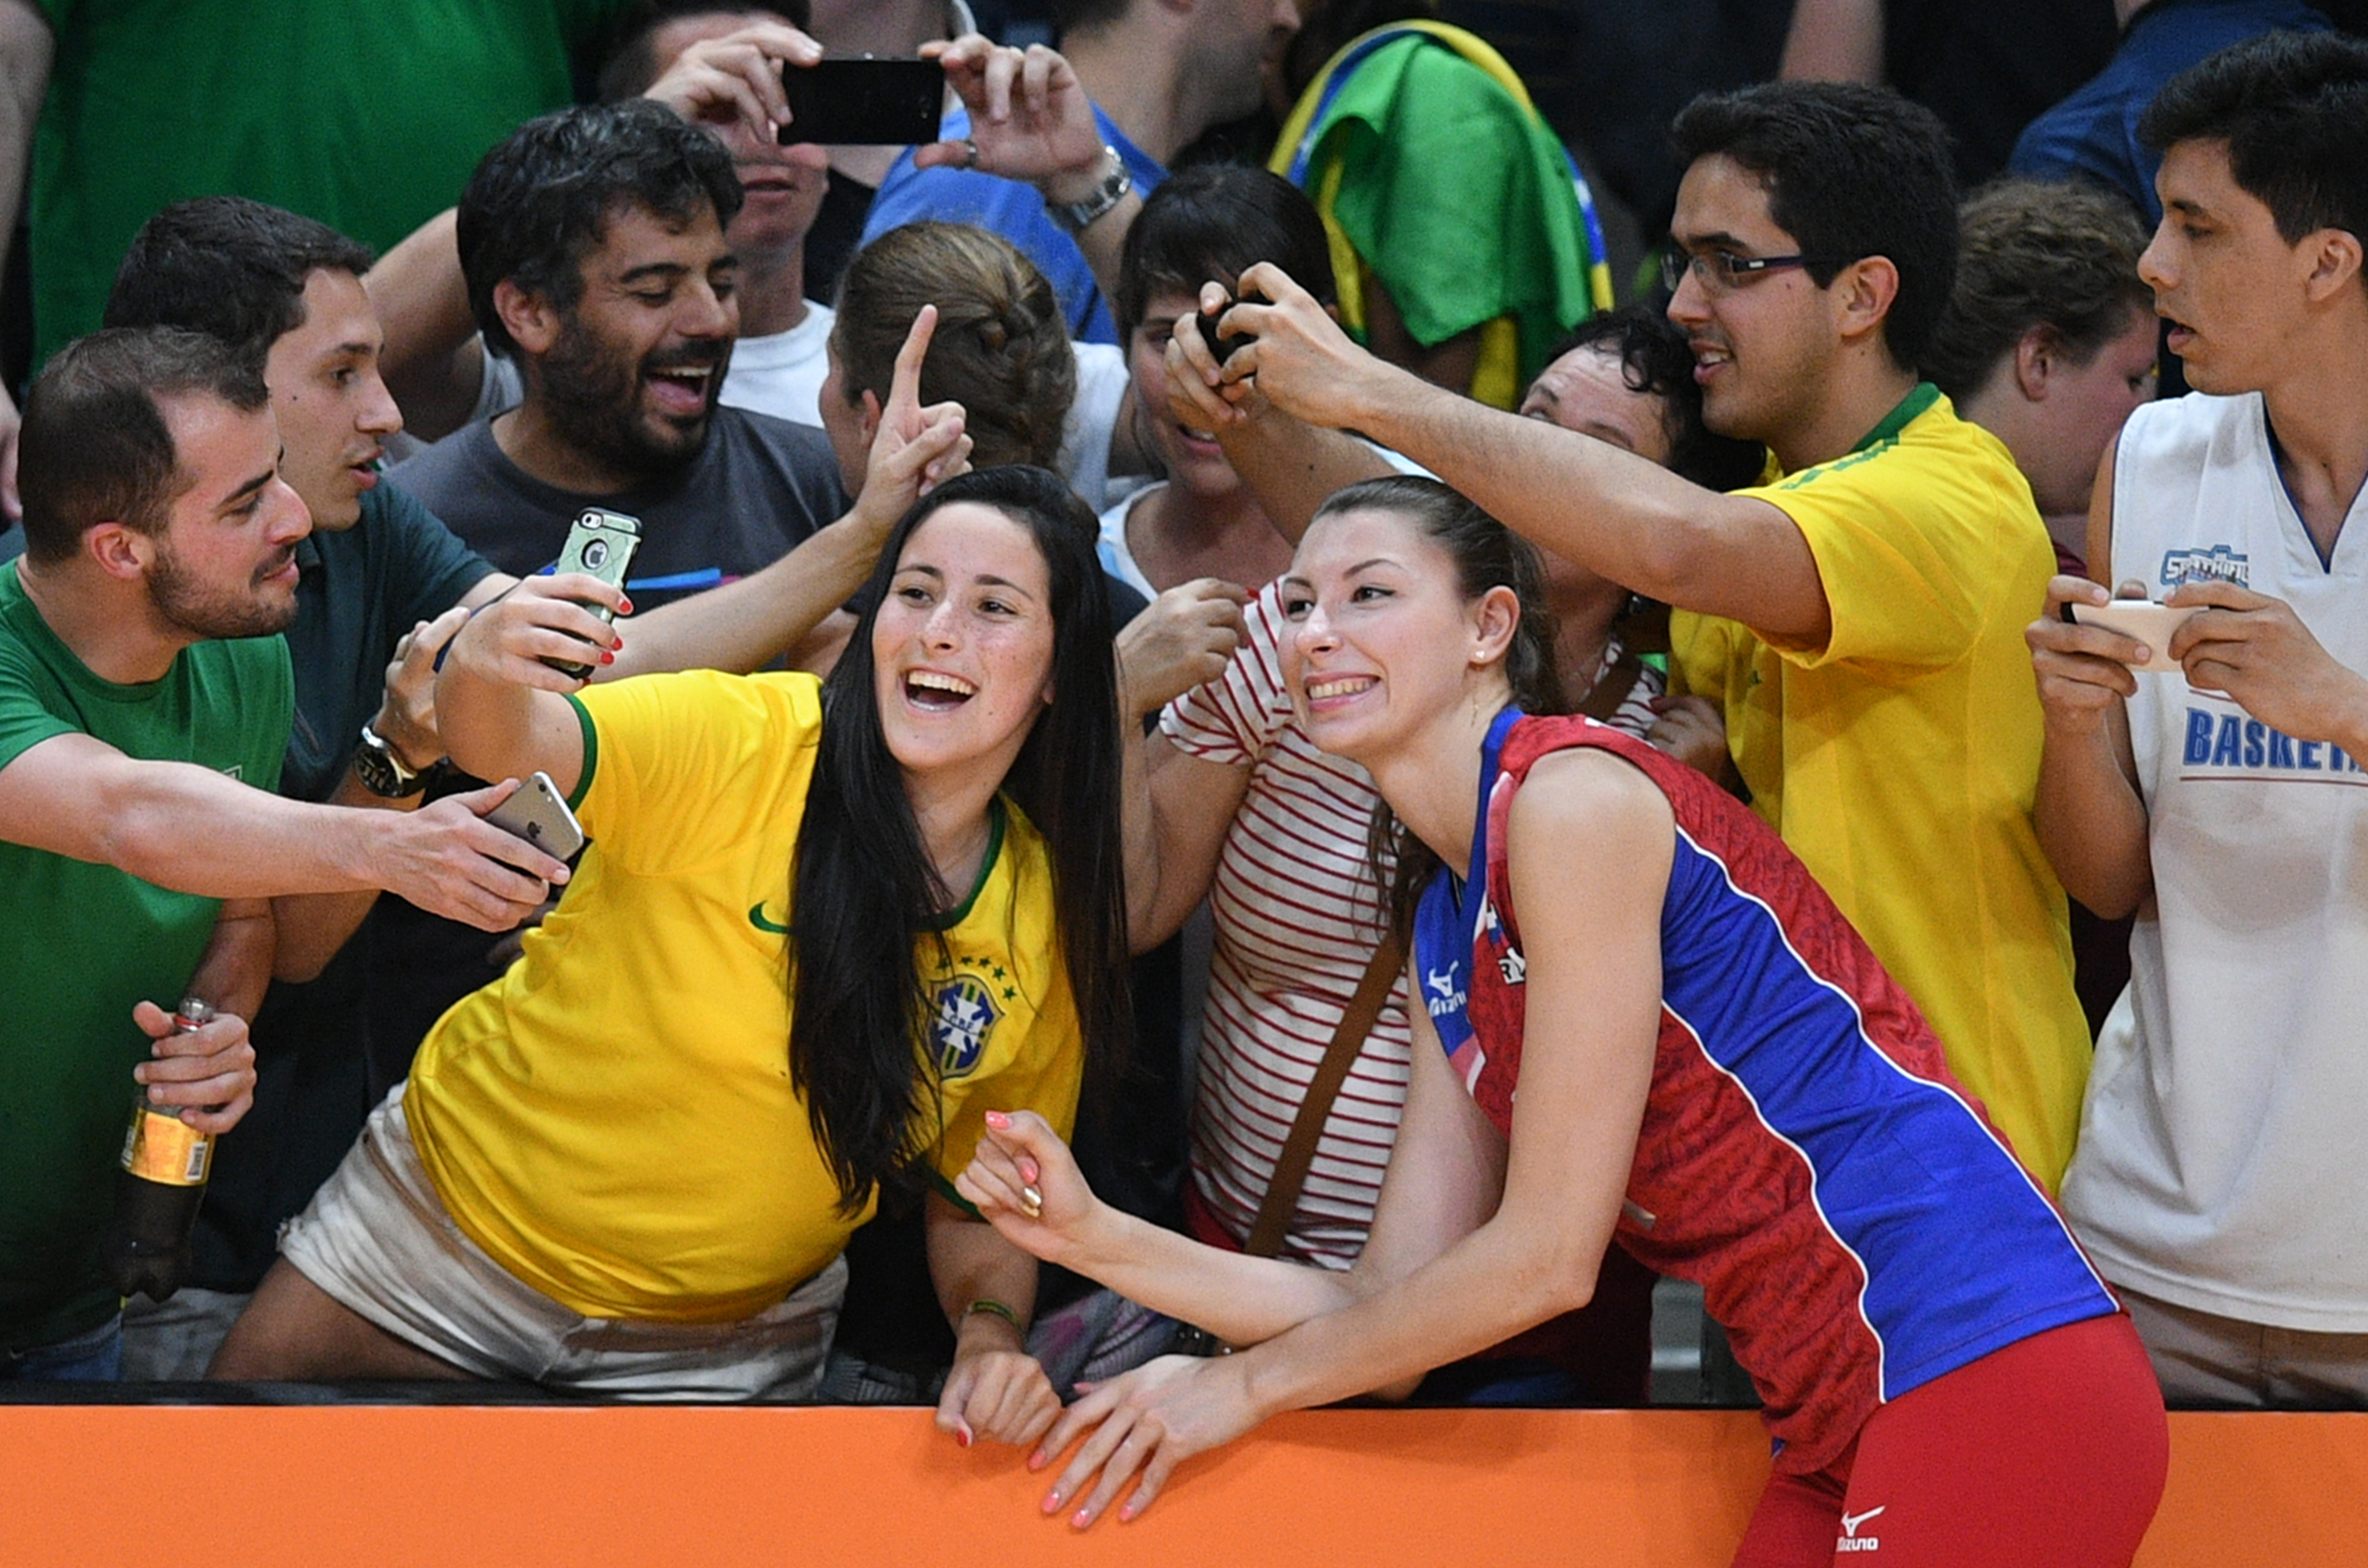 Russia's Irina Zarayazhko poses for a picture with supoprters after her team won the women's qualifying volleyball match between Russia and South Korea at the Maracanazinho stadium in Rio de Janeiro on August 8, 2016, during the 2016 Rio Olympics. / AFP PHOTO / Johannes EISELE